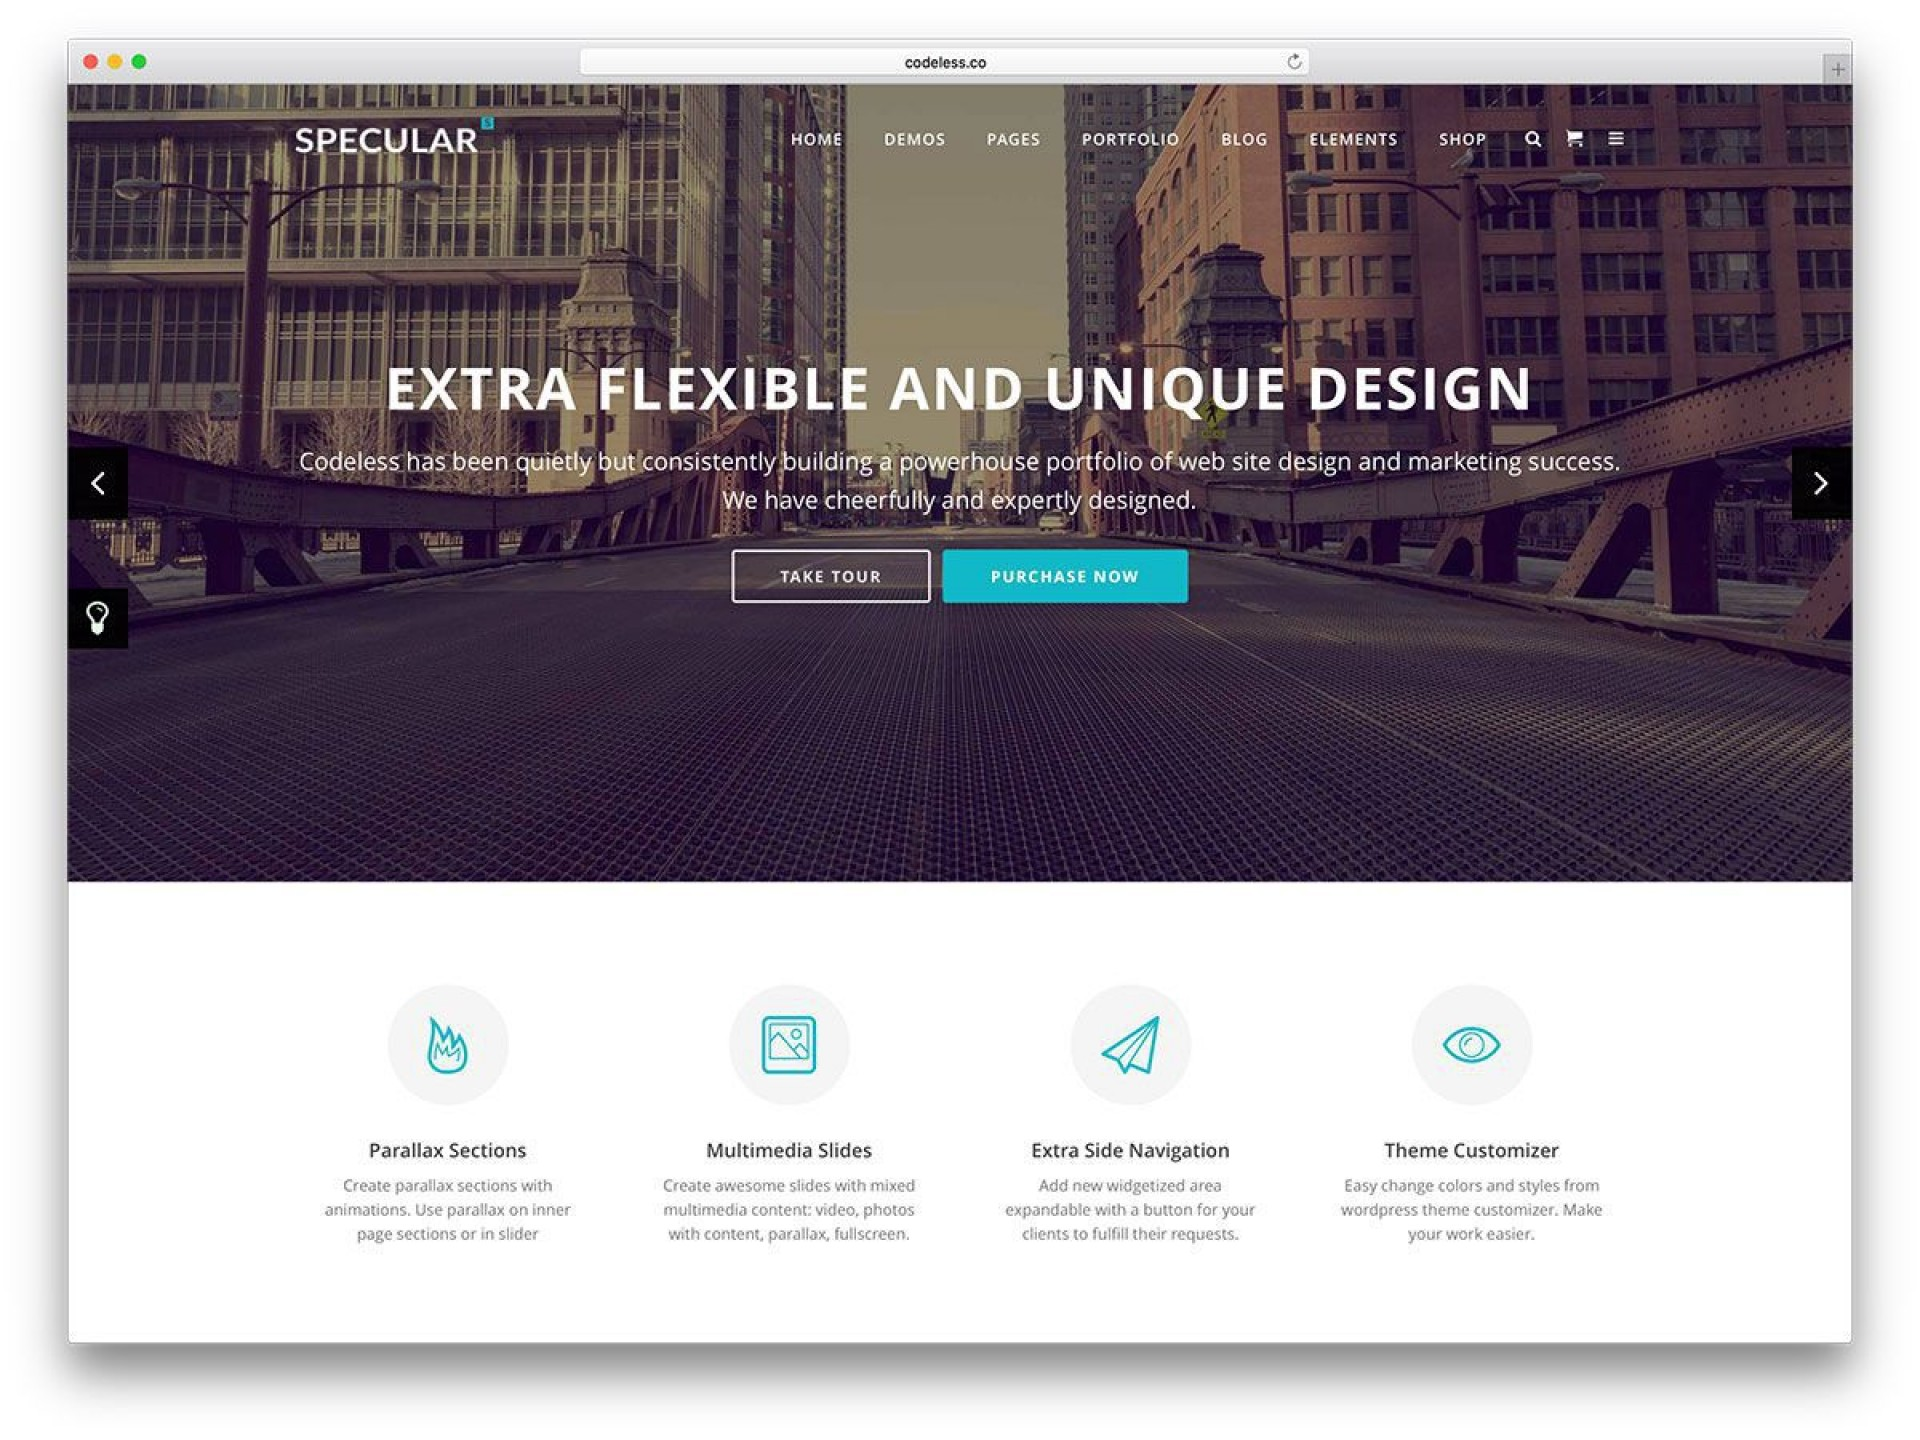 008 Striking Free Html Busines Web Template Download Highest Clarity  And Cs For1920